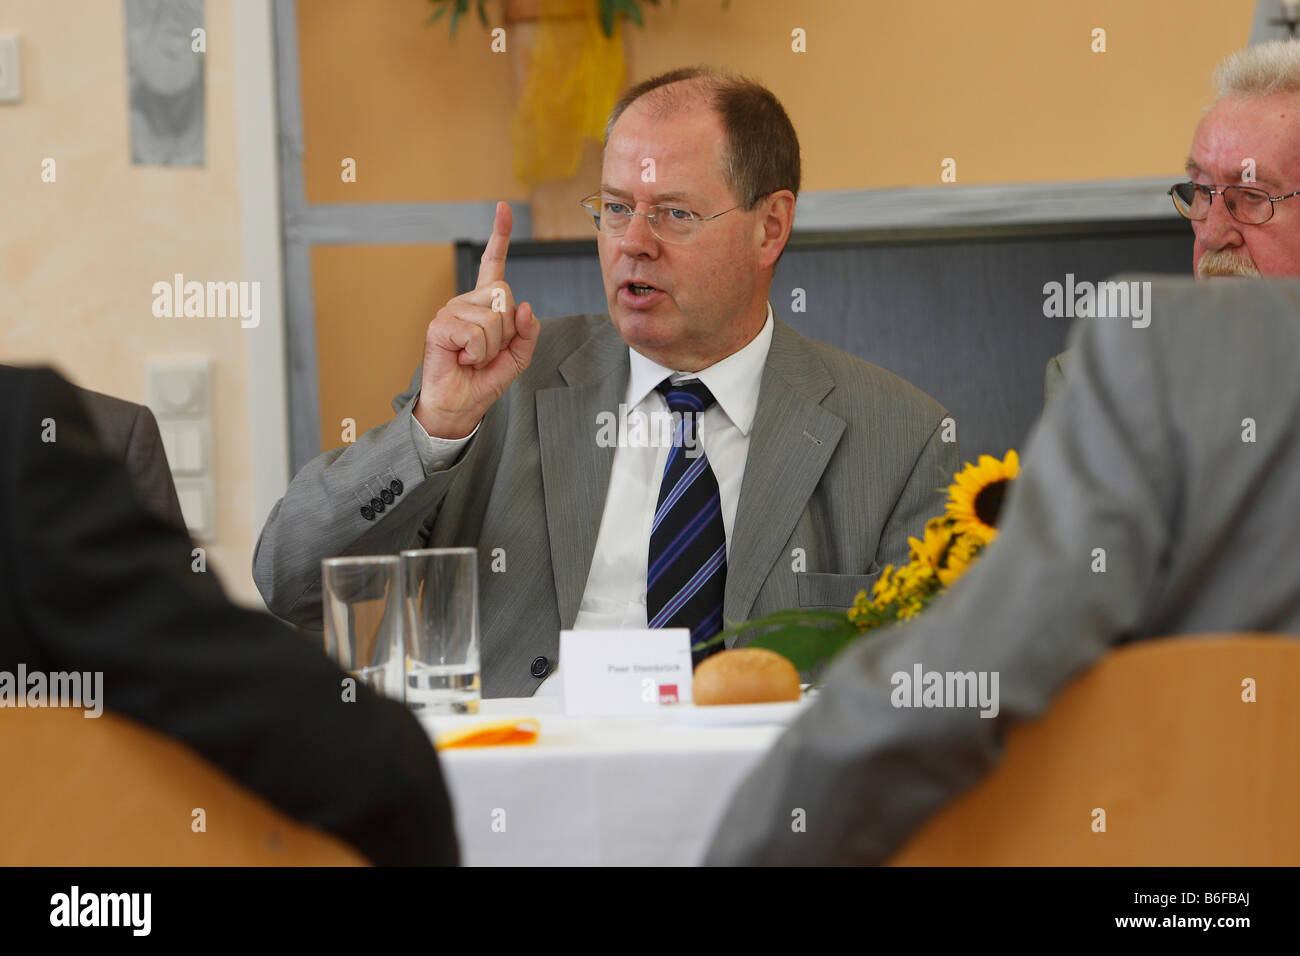 Federal Minister of Finance, Peer Steinbrueck, Roesrath, North Rhine-Westphalia, Germany, Europe - Stock Image